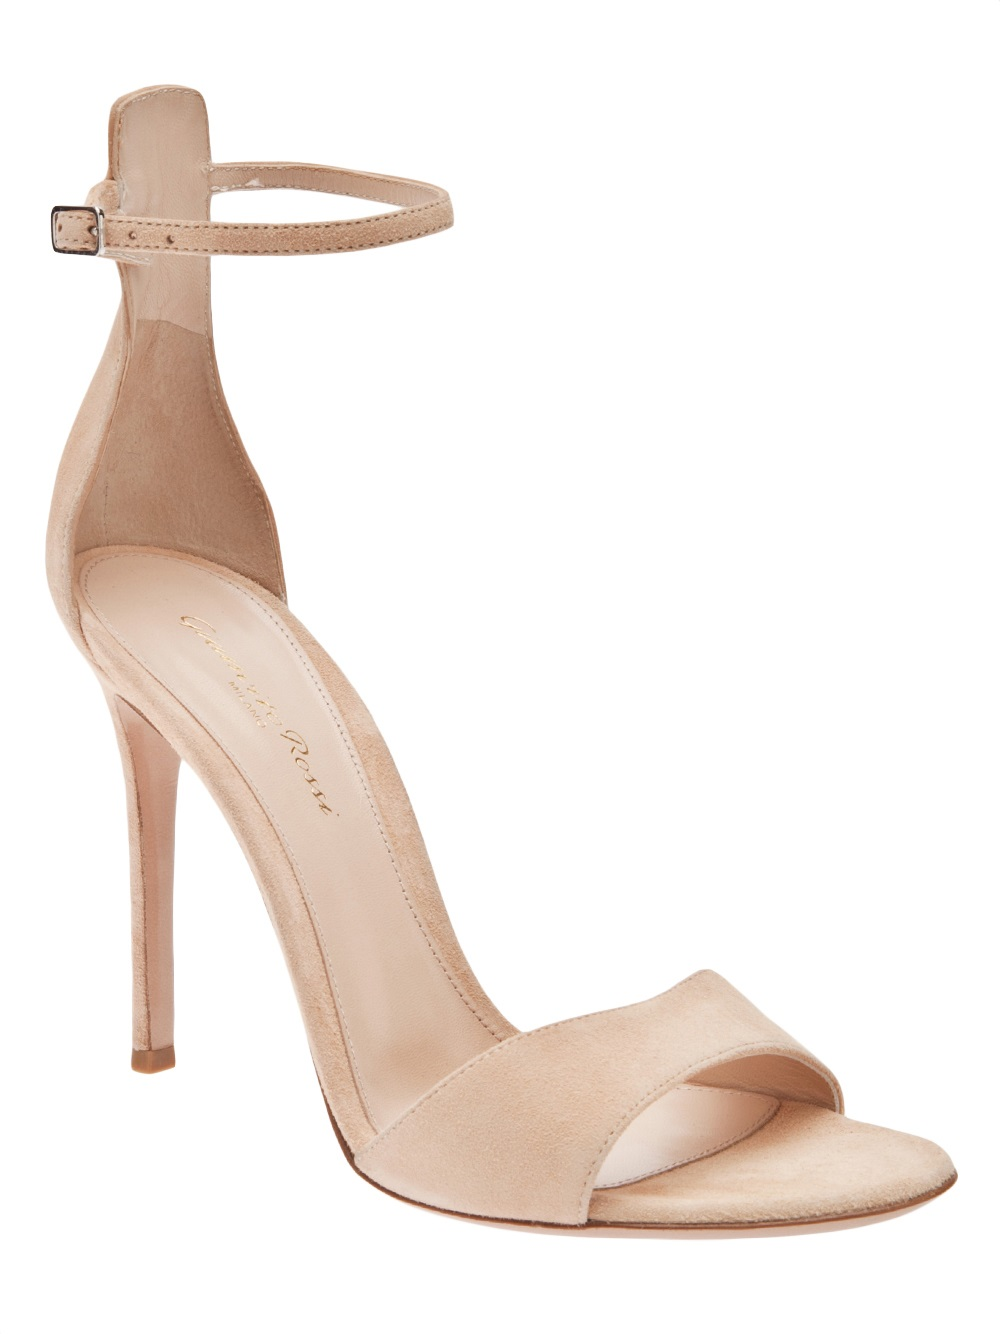 Sale 2018 Gianvito Rossi Ankle Strap Sandals Get To Buy YMBSwaWg